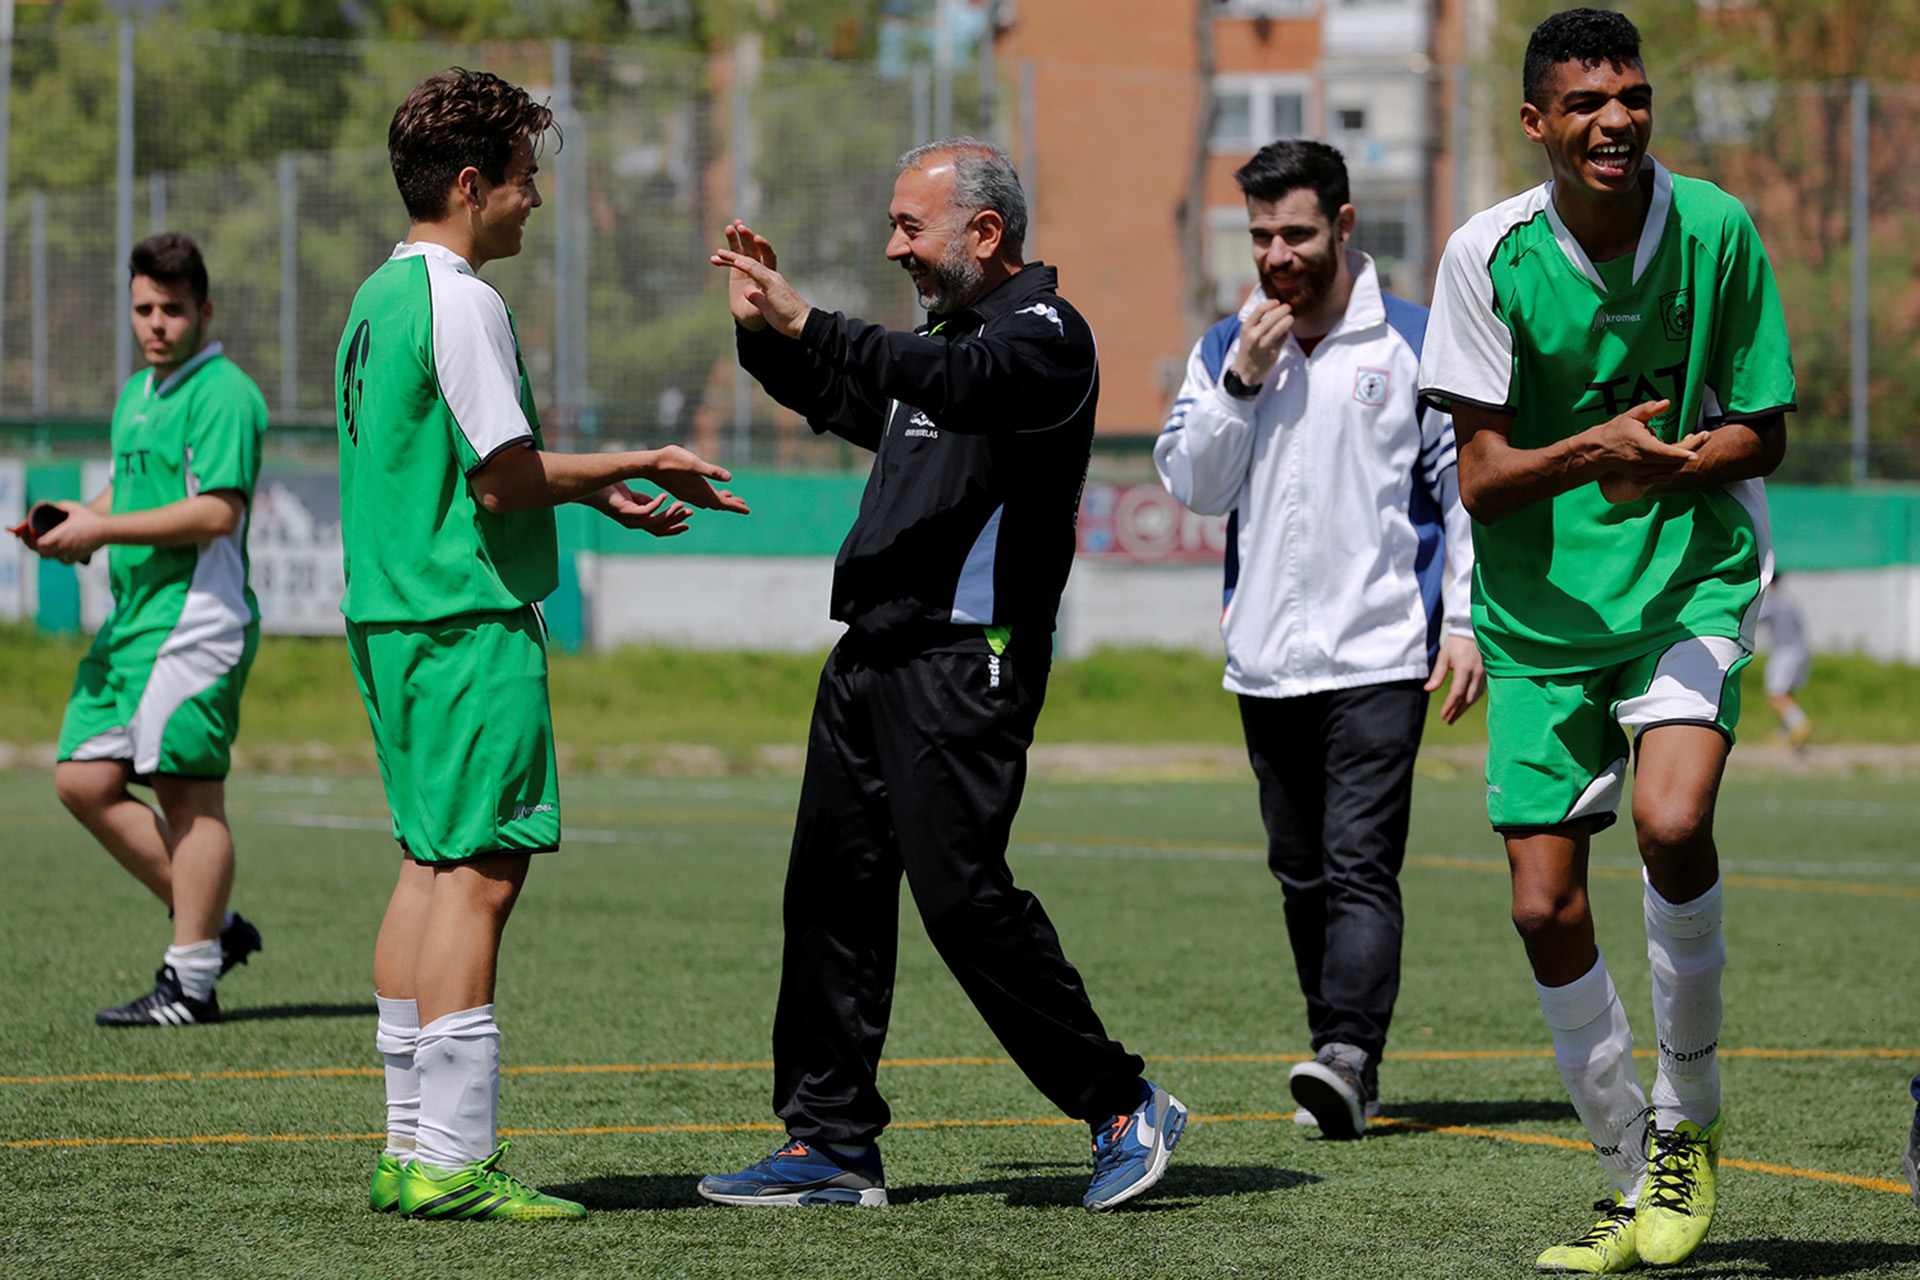 "ATTENTION EDITORS: SPANISH LAW REQUIRES THAT THE FACES OF MINORS ARE MASKED IN PUBLICATIONS WITHIN SPAIN - Osama Abdul Mohsen (C), a Syrian refugee, celebrates victory with his junior team's players after a soccer match in Villaverde, a neighbourhood in Madrid, Spain, April 24, 2016. Mohsen's story went viral after he was filmed being tripped up by a camerawoman as he fled police near the Hungarian border with Serbia last September. He was carrying his youngest son Zaid in his arms at the time, and the two fell sprawling on the ground. Footage of the incident helped bring him to the attention of a soccer training school in Getafe on the outskirts of Madrid, which found him work as a liaison officer. REUTERS/Sergio Perez     SEARCH ""REFUGEE PEREZ"" FOR THIS STORY. SEARCH ""THE WIDER IMAGE"" FOR ALL STORIES   - RTX2CXCJ"